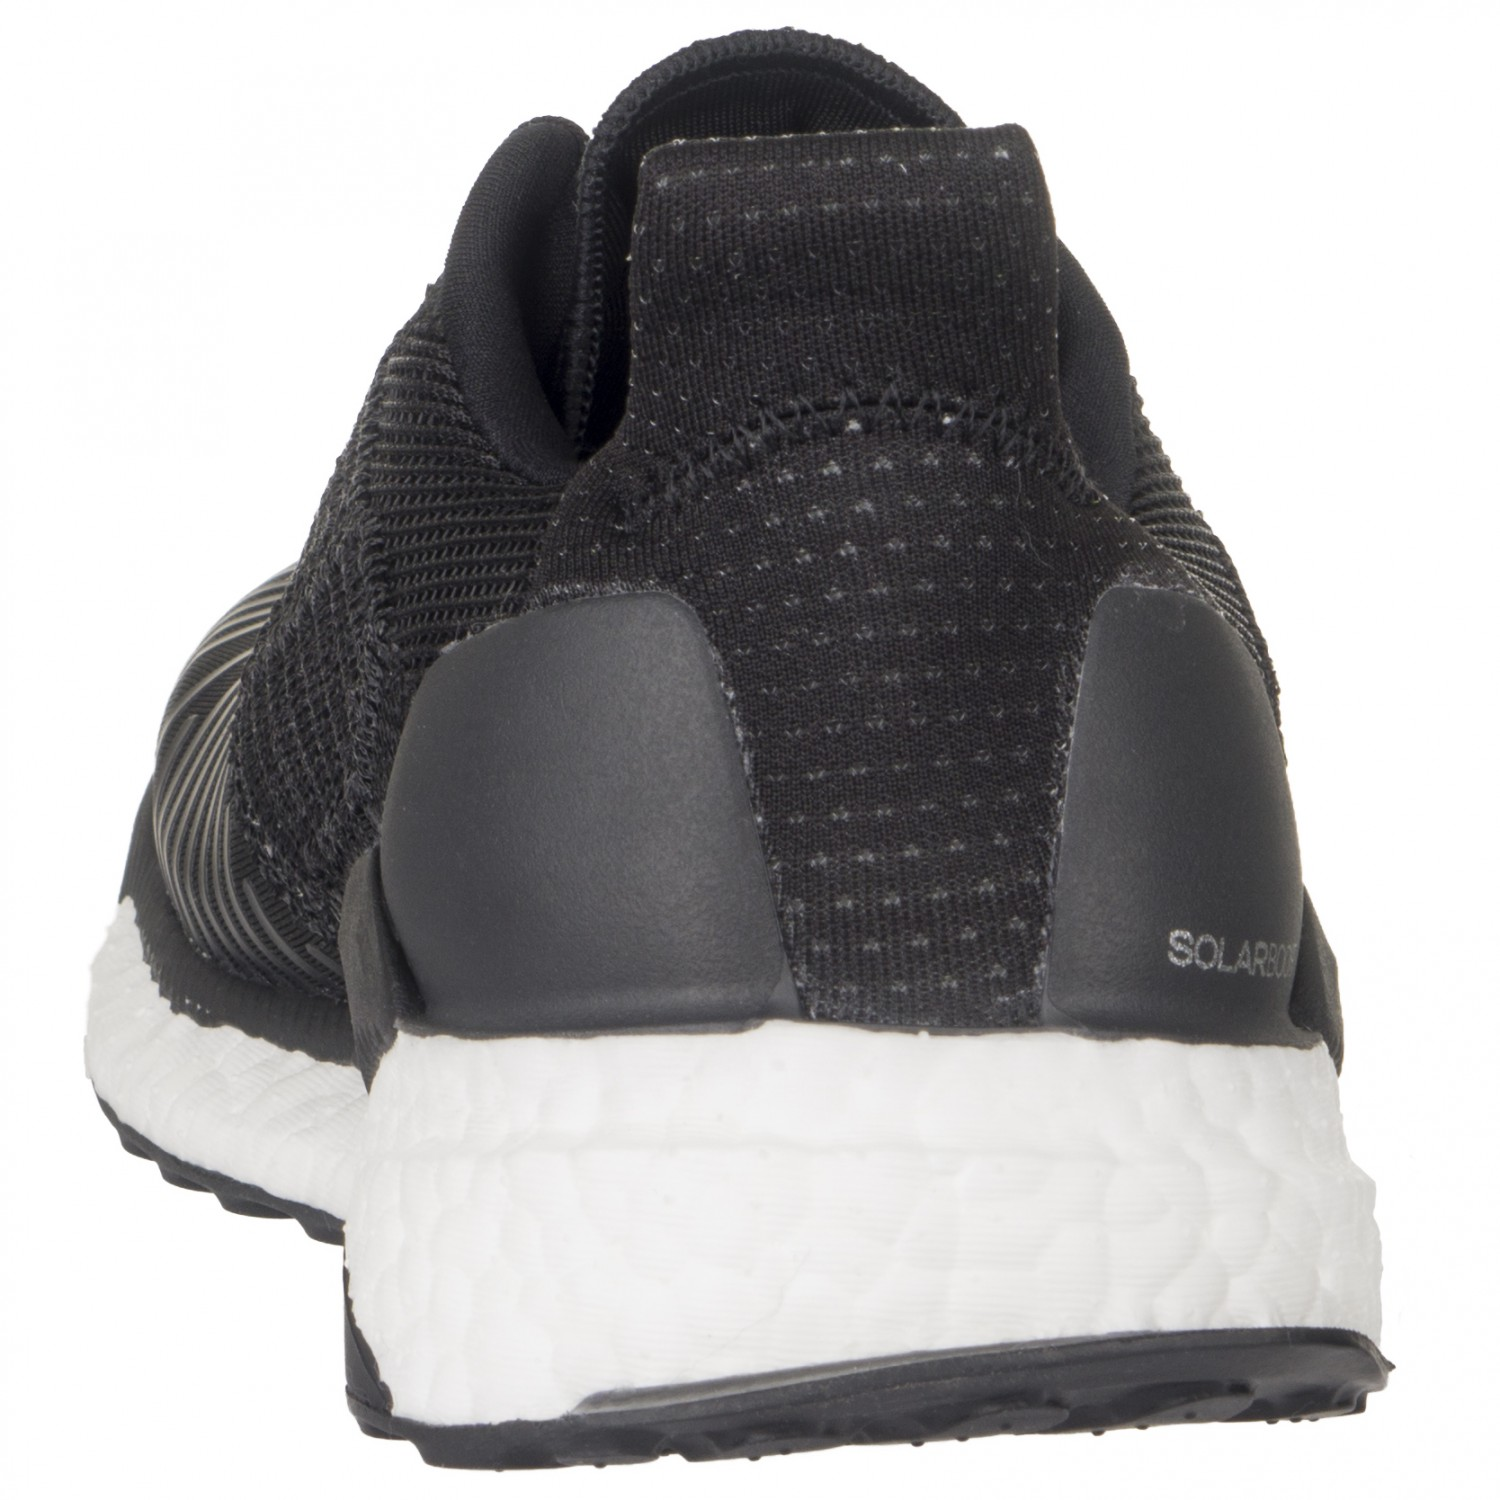 sale retailer 5ff77 96e90 ... coupon code for adidas womens solar boost running shoes 6d5ed b276b  sweden adidas running solar boost core black grey four f17 ftwr white ...